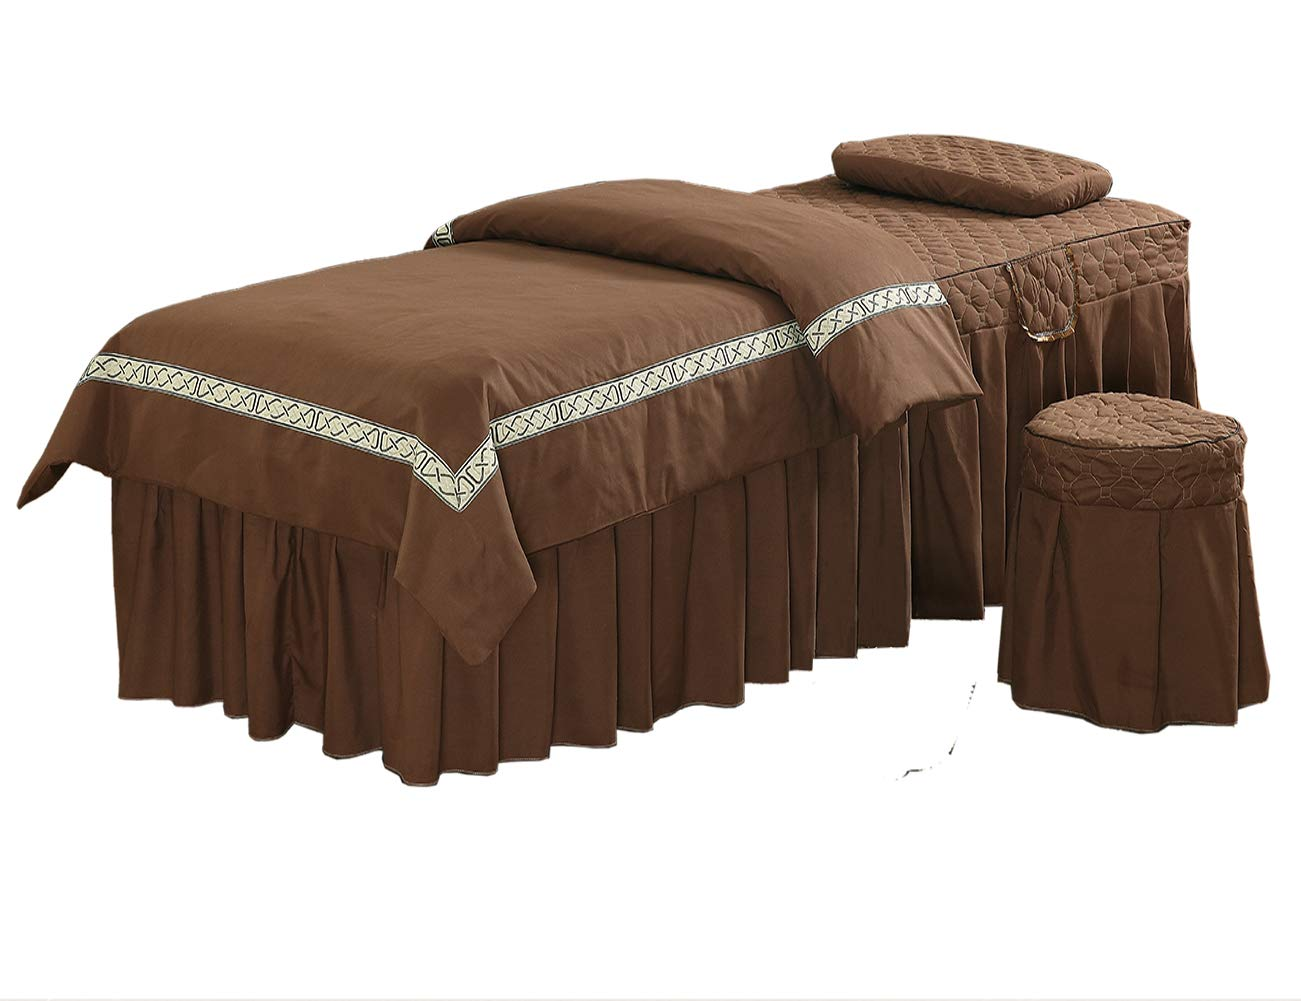 Massage Table Sheet Sets, Pure Color, 4 Pieces, Bedspread with Face Rest Hole, Customizable